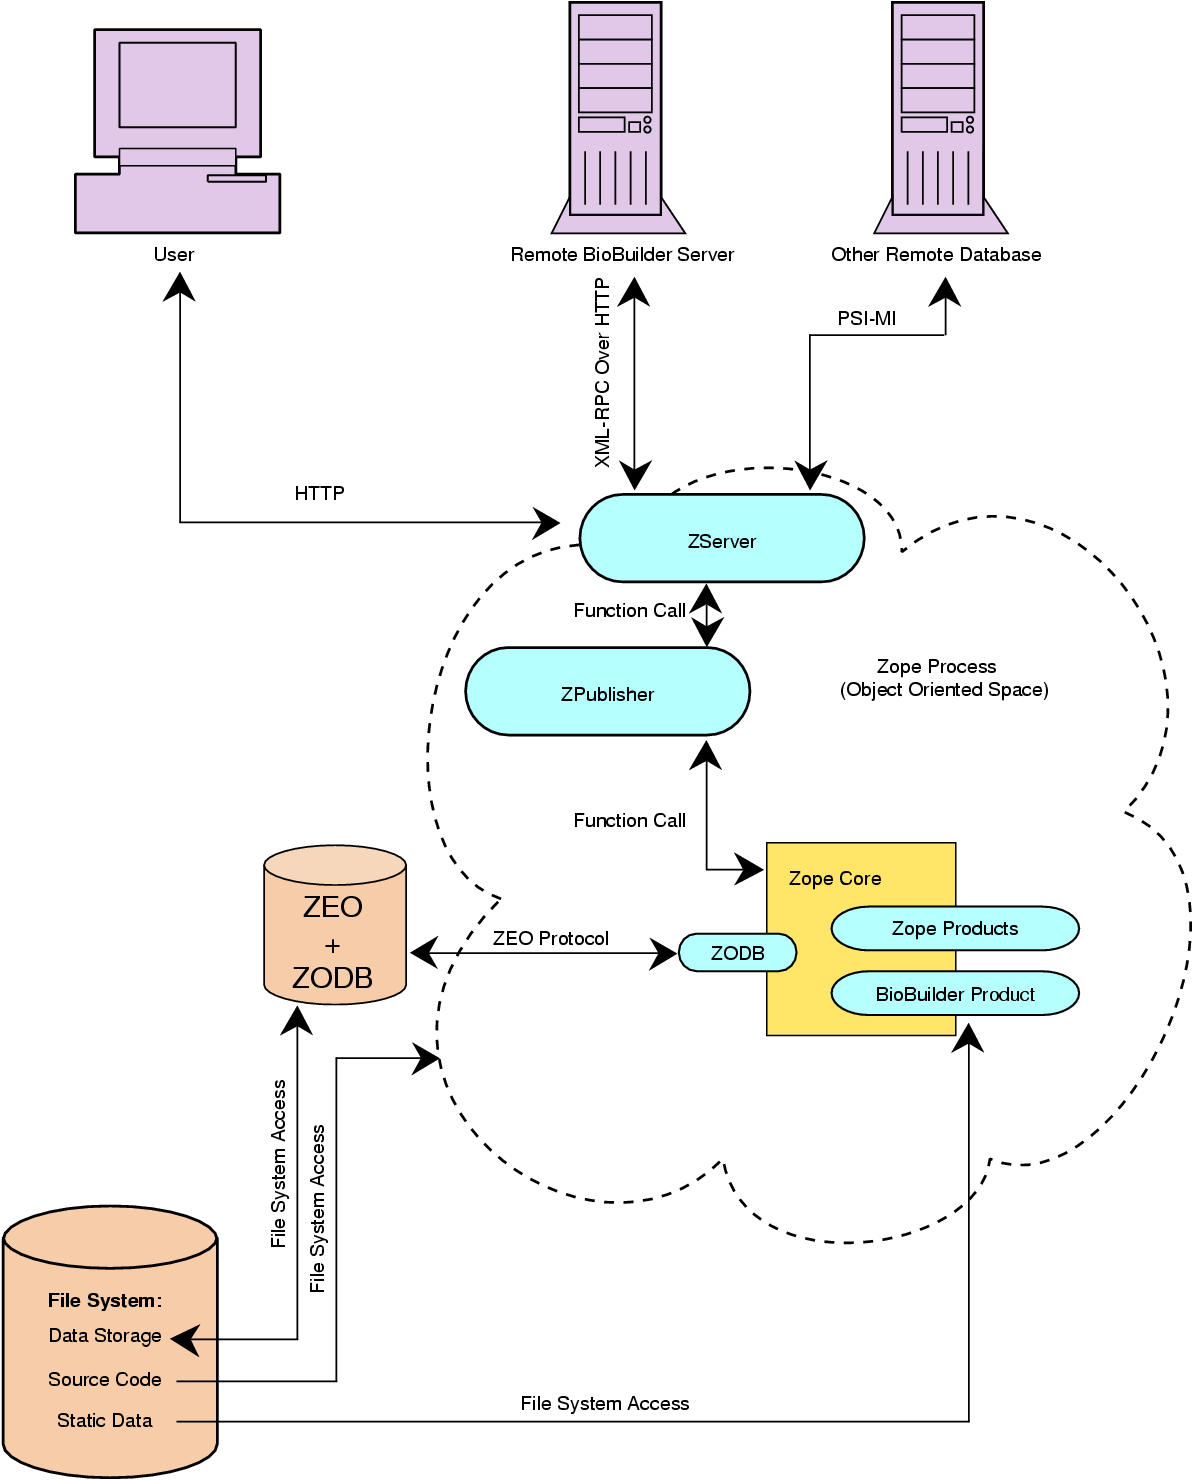 https://static-content.springer.com/image/art%3A10.1186%2F1471-2105-5-43/MediaObjects/12859_2003_Article_159_Fig1_HTML.jpg